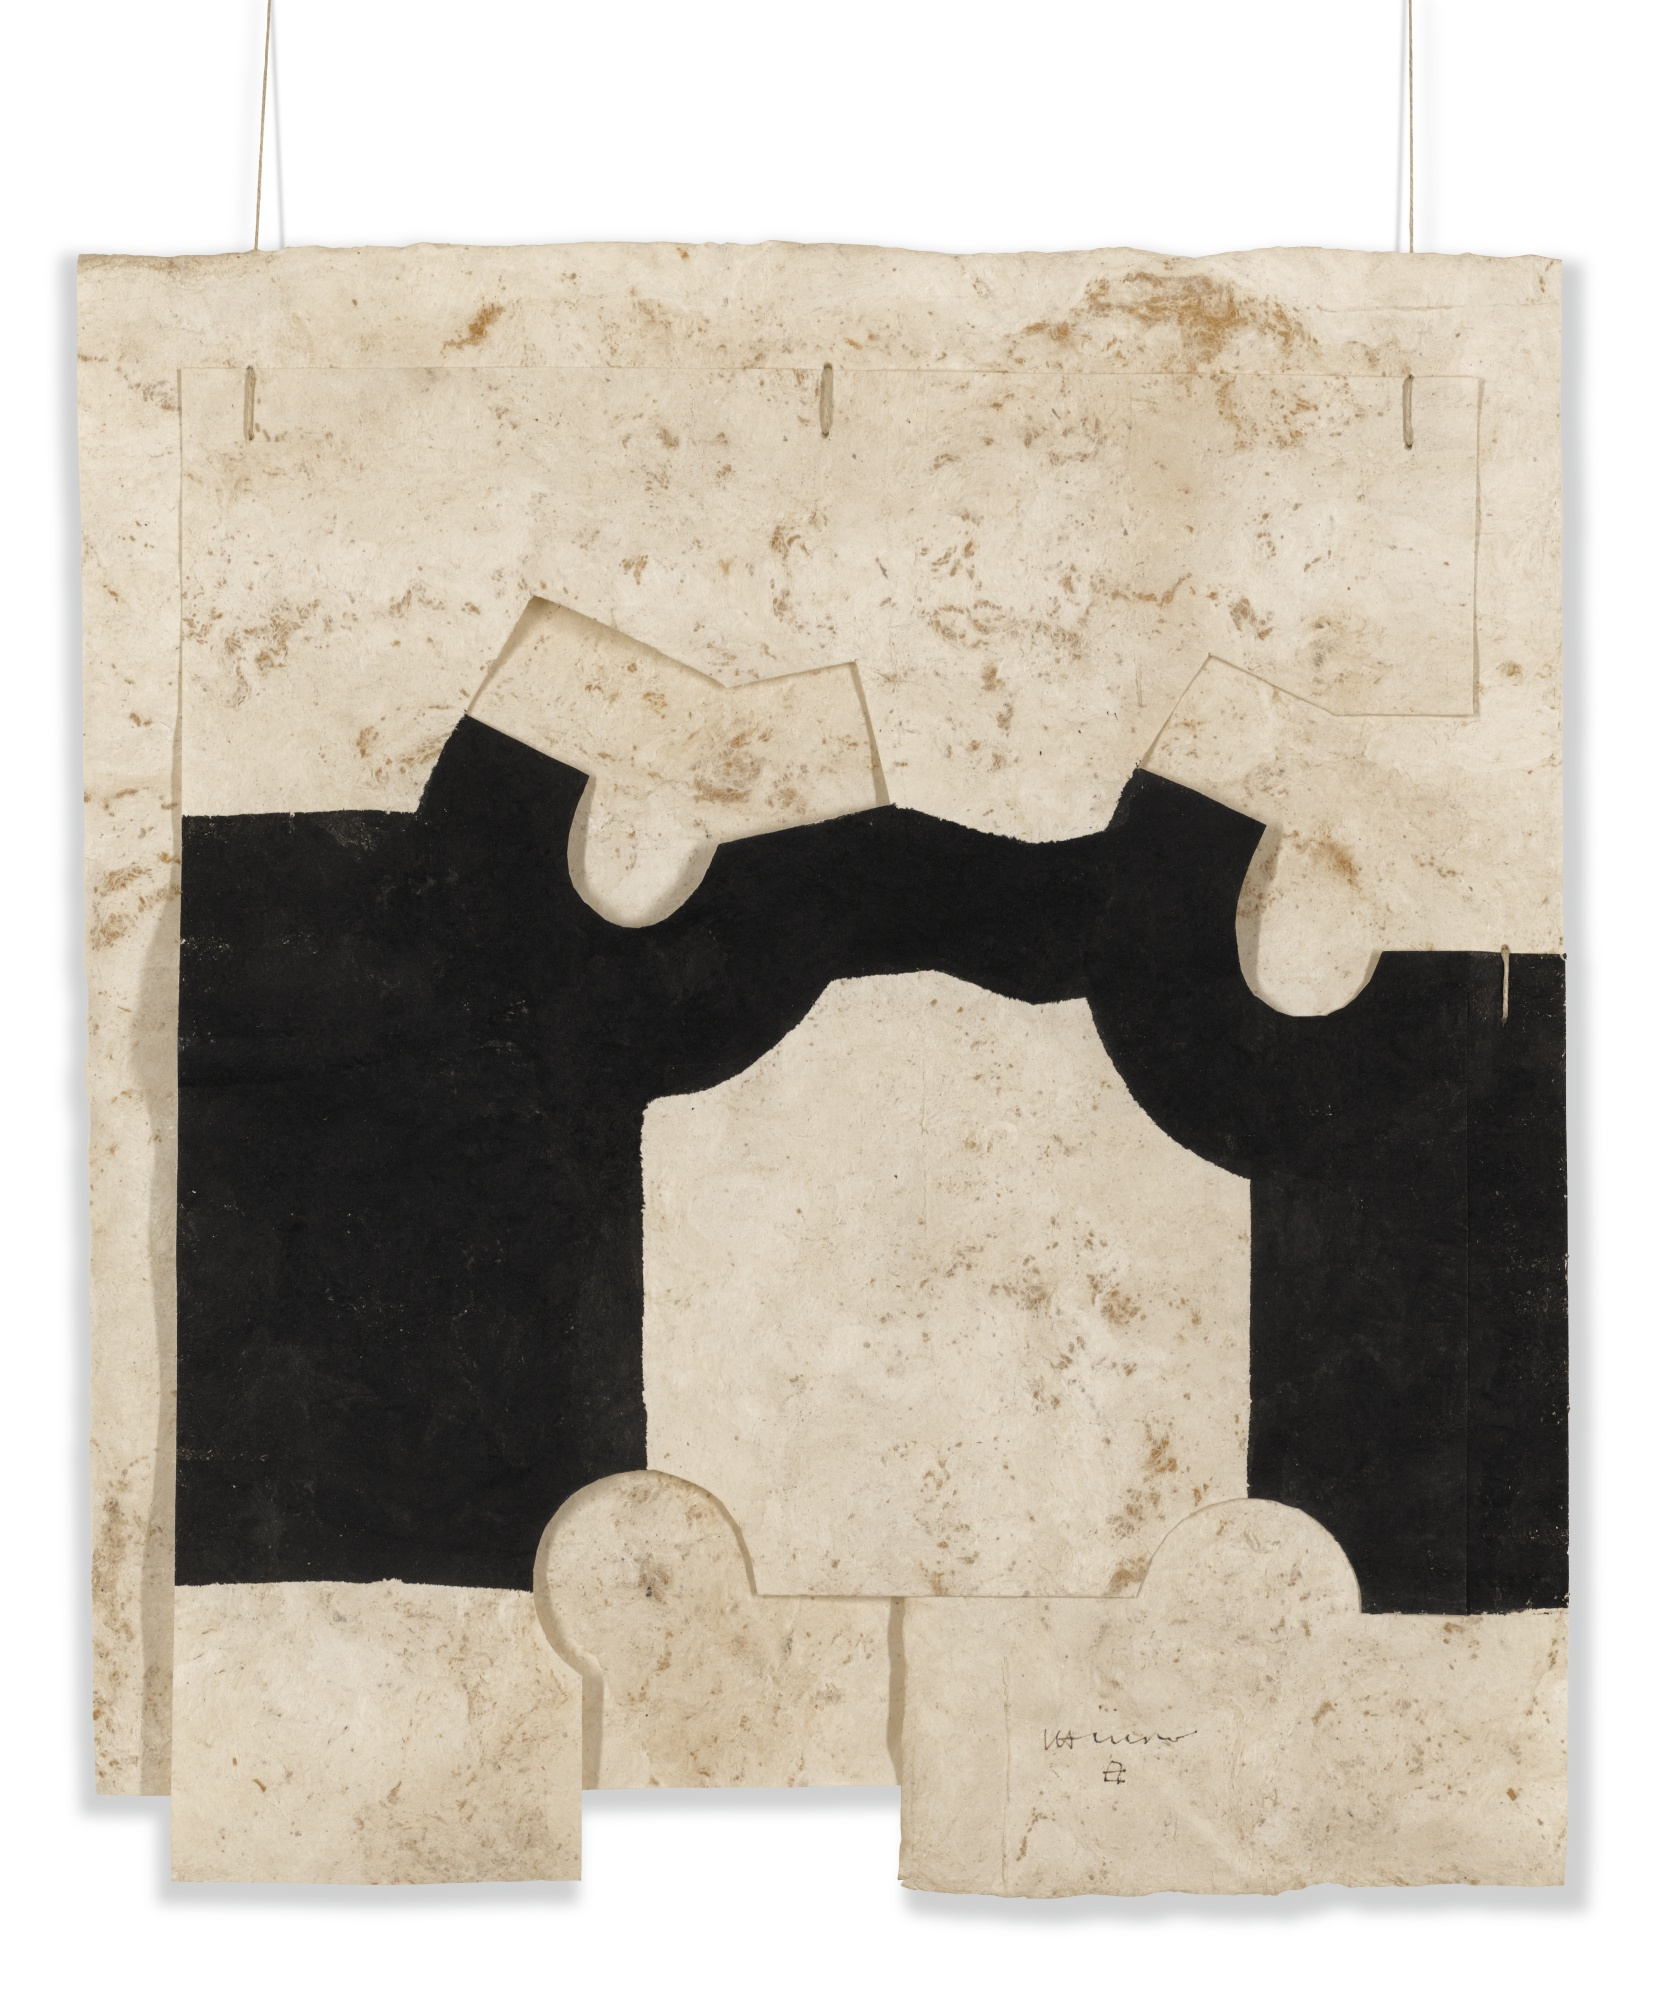 Eduardo Chillida-Untitled-1990